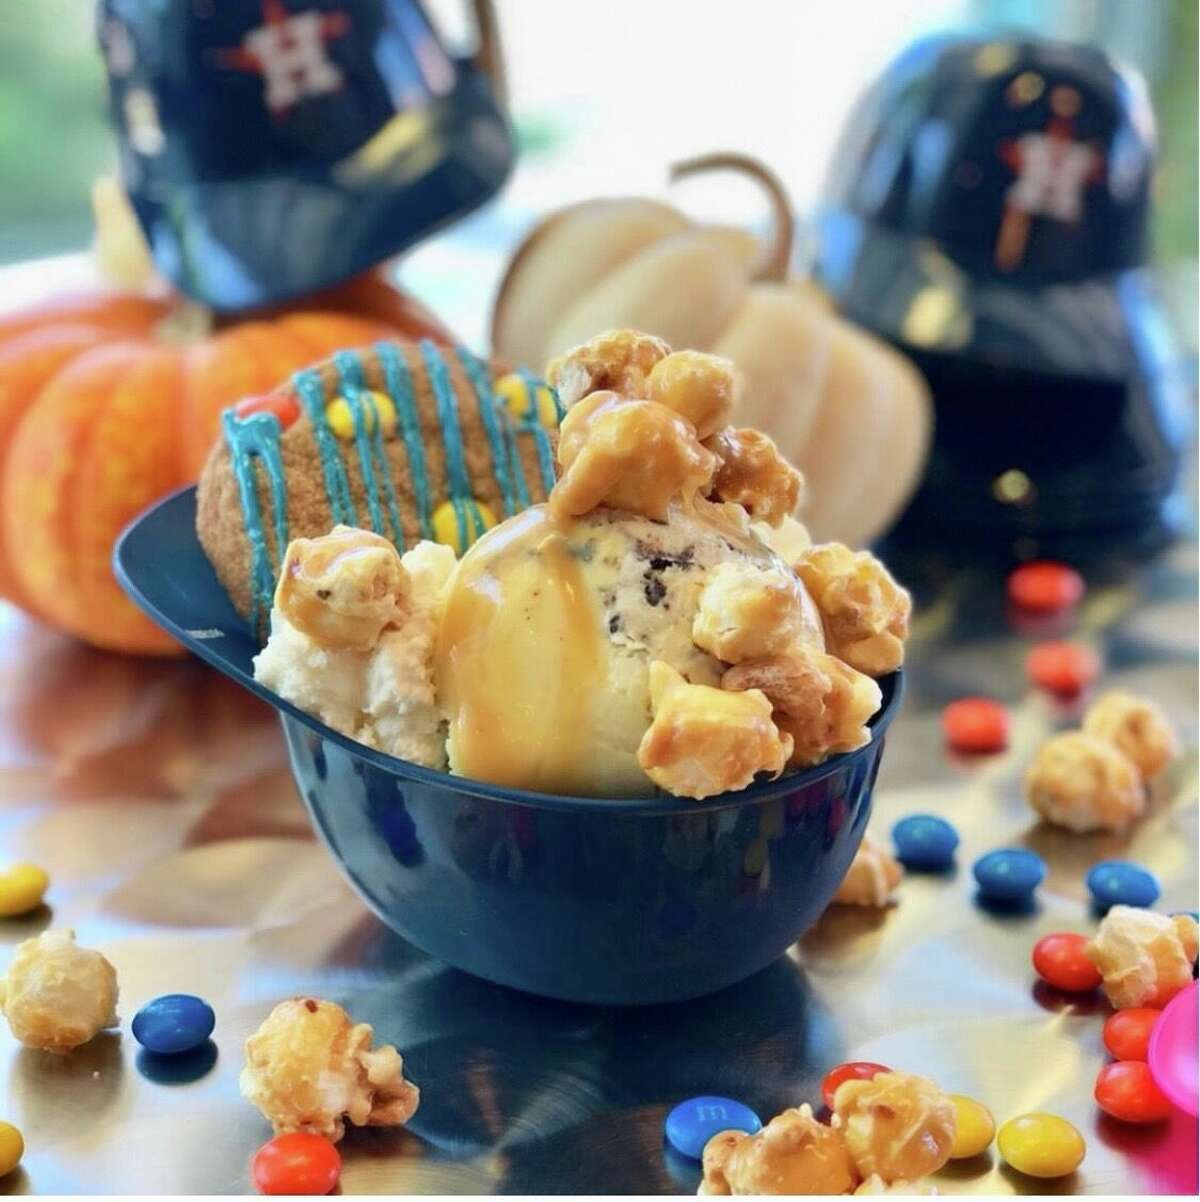 Sweet Bribery - 250 W. 19th St. During the entire month of October, guests can try Sweet Bribery's new treat dubbed the Championship Sundae, featuring an ice cream scoop of your choice, a house-made blue n' gold cookie, caramel sauce, fresh whipped cream and caramel kettle corn